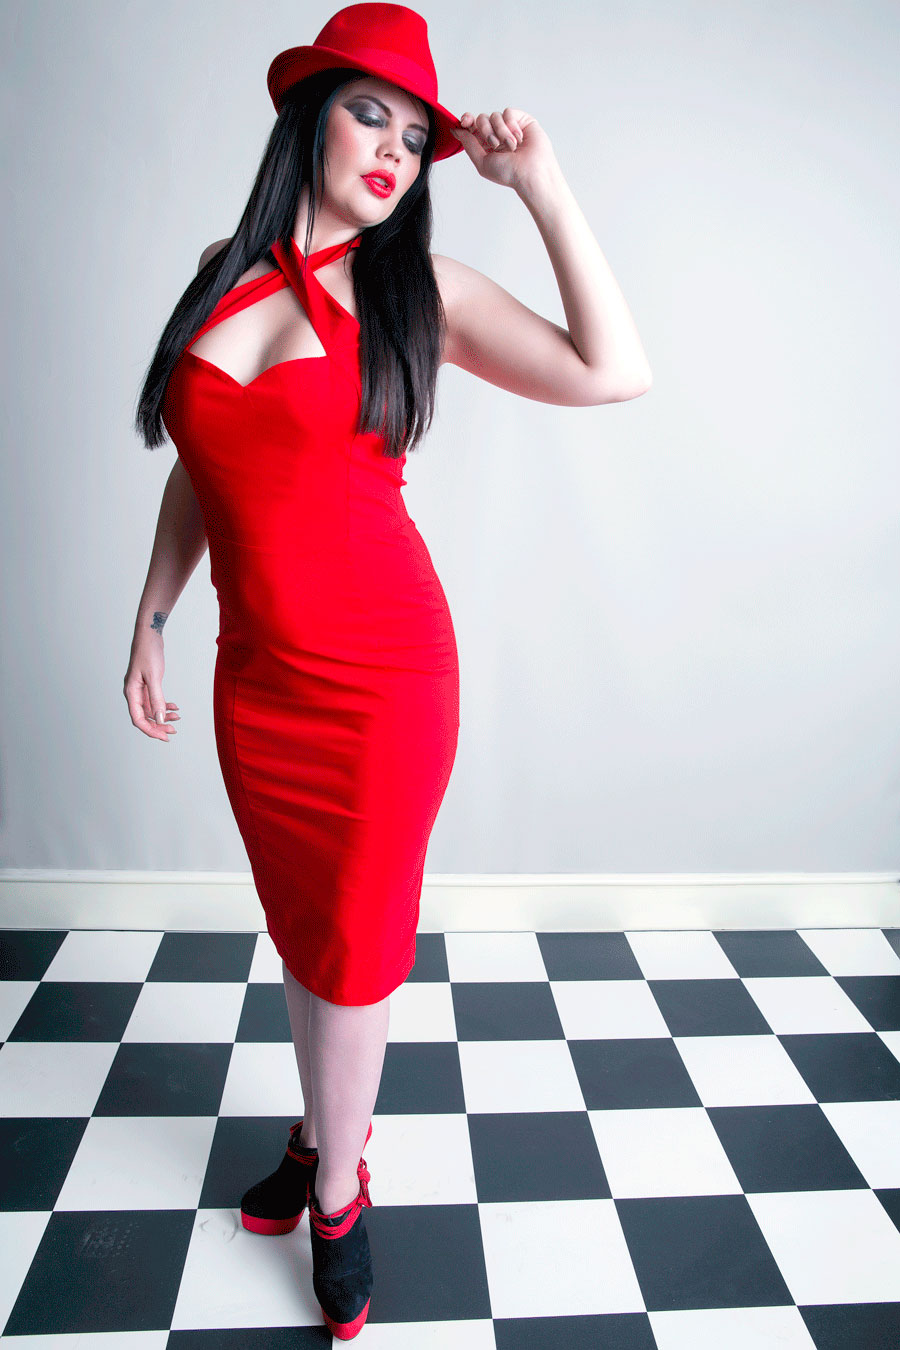 If you want to be noticed....wear red / Photography by Bryan Watkins, Makeup by Beauty Classics, Post processing by Bryan Watkins, Taken at Bryan Watkins / Uploaded 25th June 2016 @ 11:55 AM